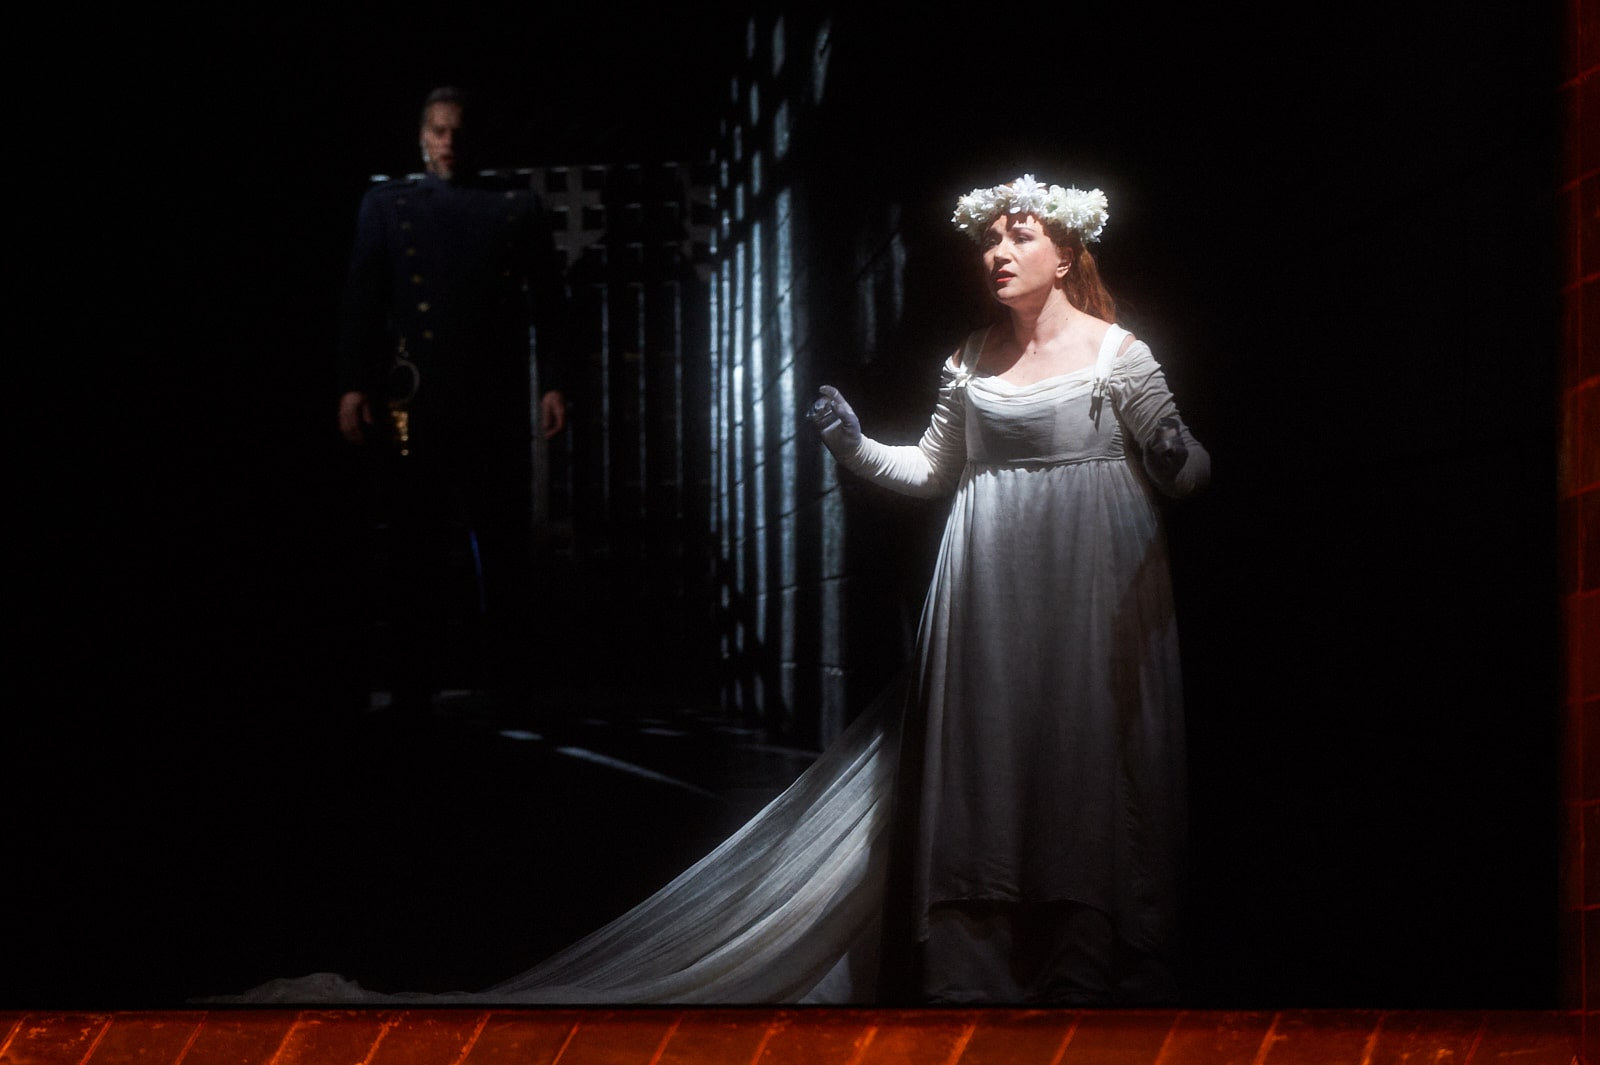 Bride with floral crown stands spot lit in darkened room with man looming in shadows of gate behind.